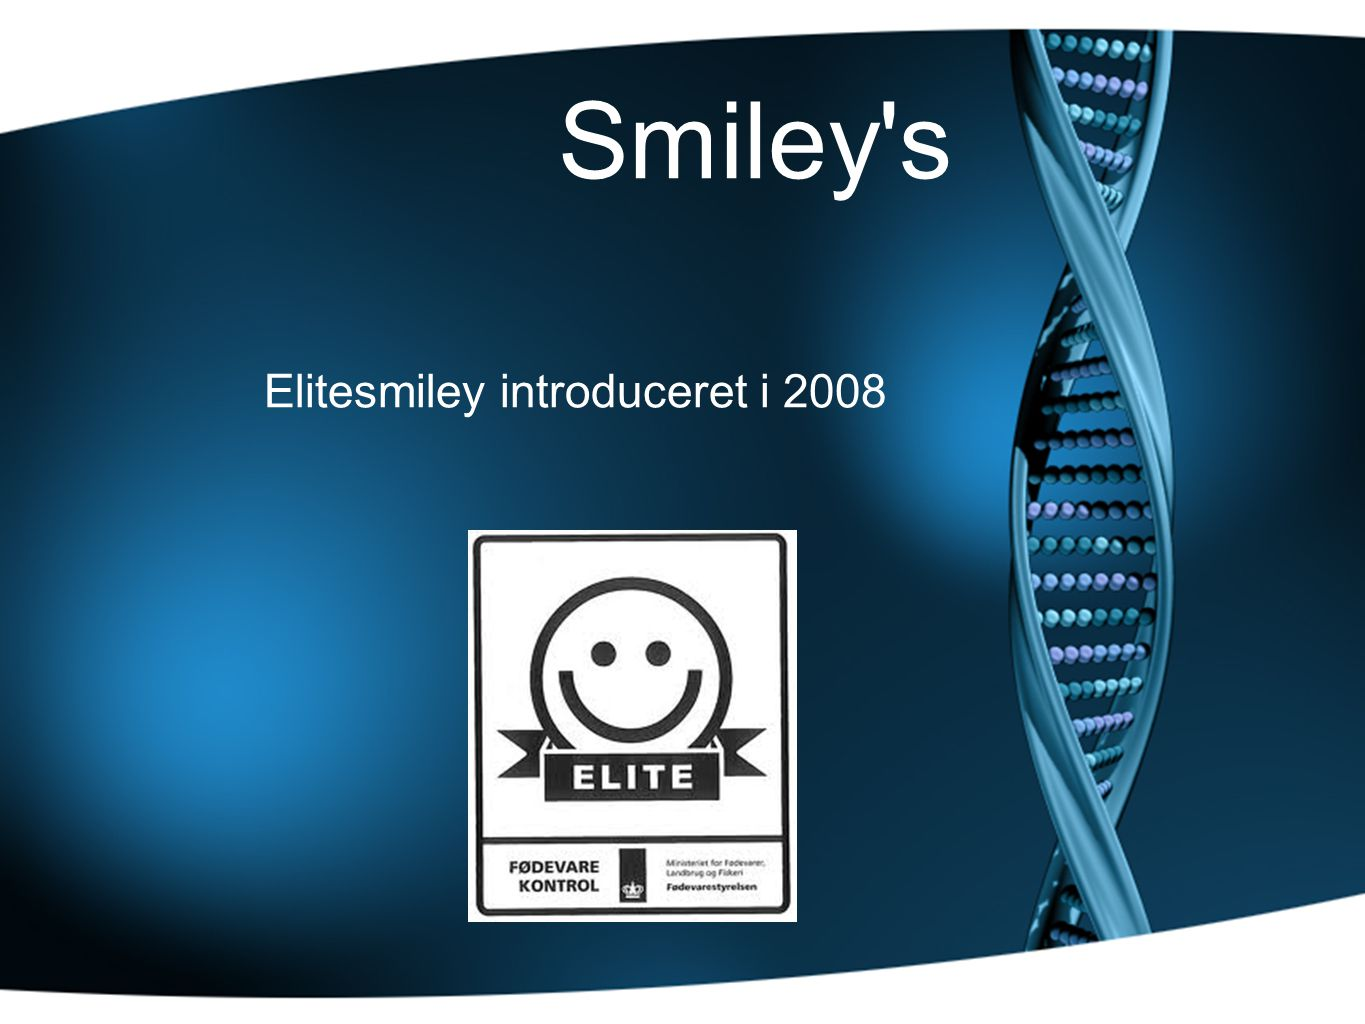 Smiley s Elitesmiley introduceret i 2008